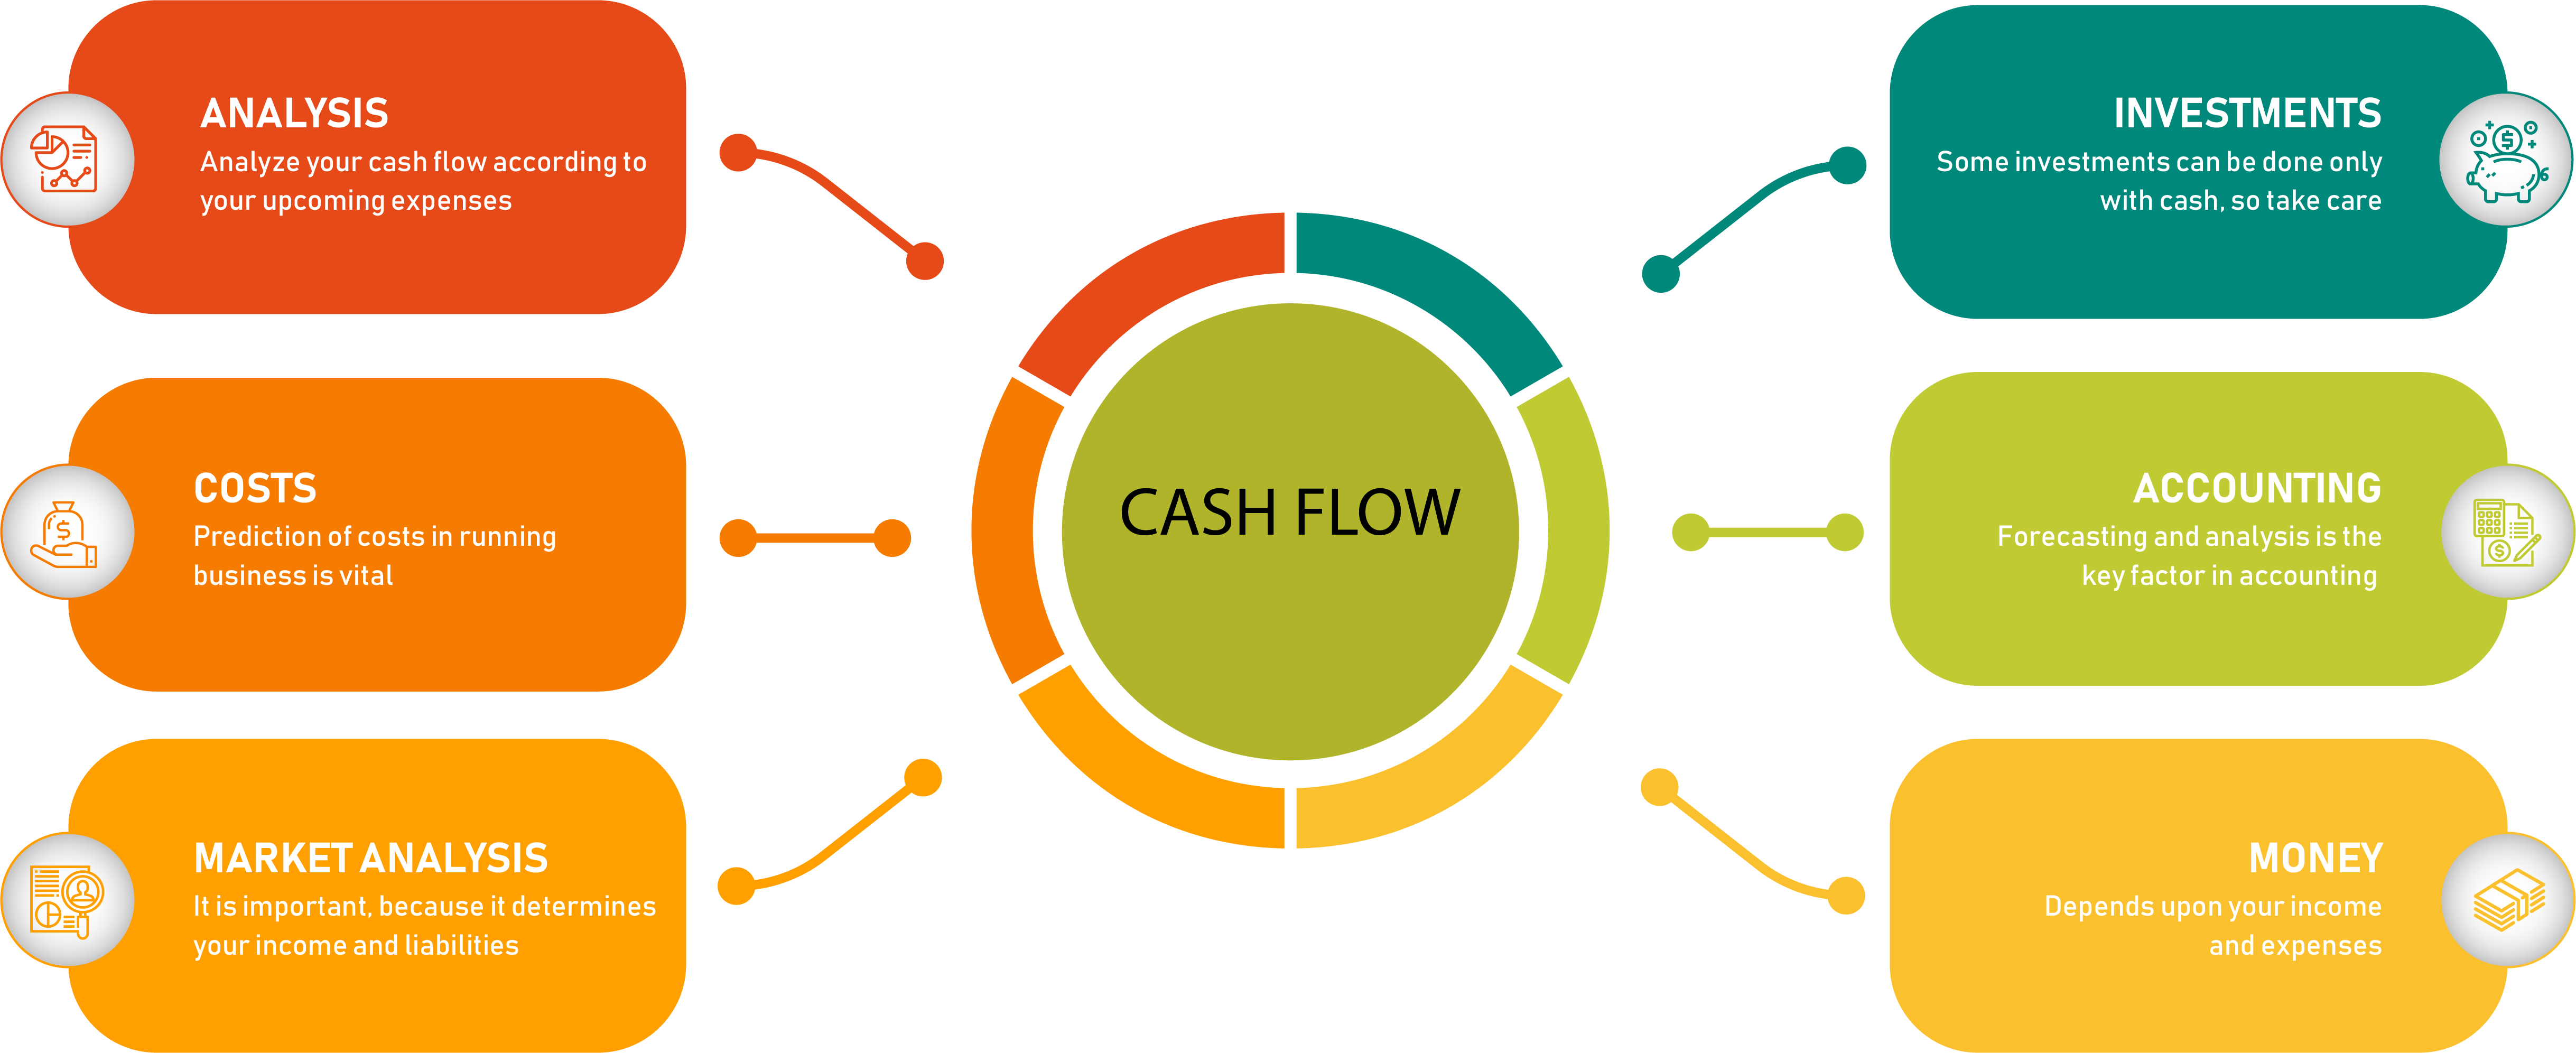 5 ways to calculate cash flow forecast for a Start Up - MindCypress Blog